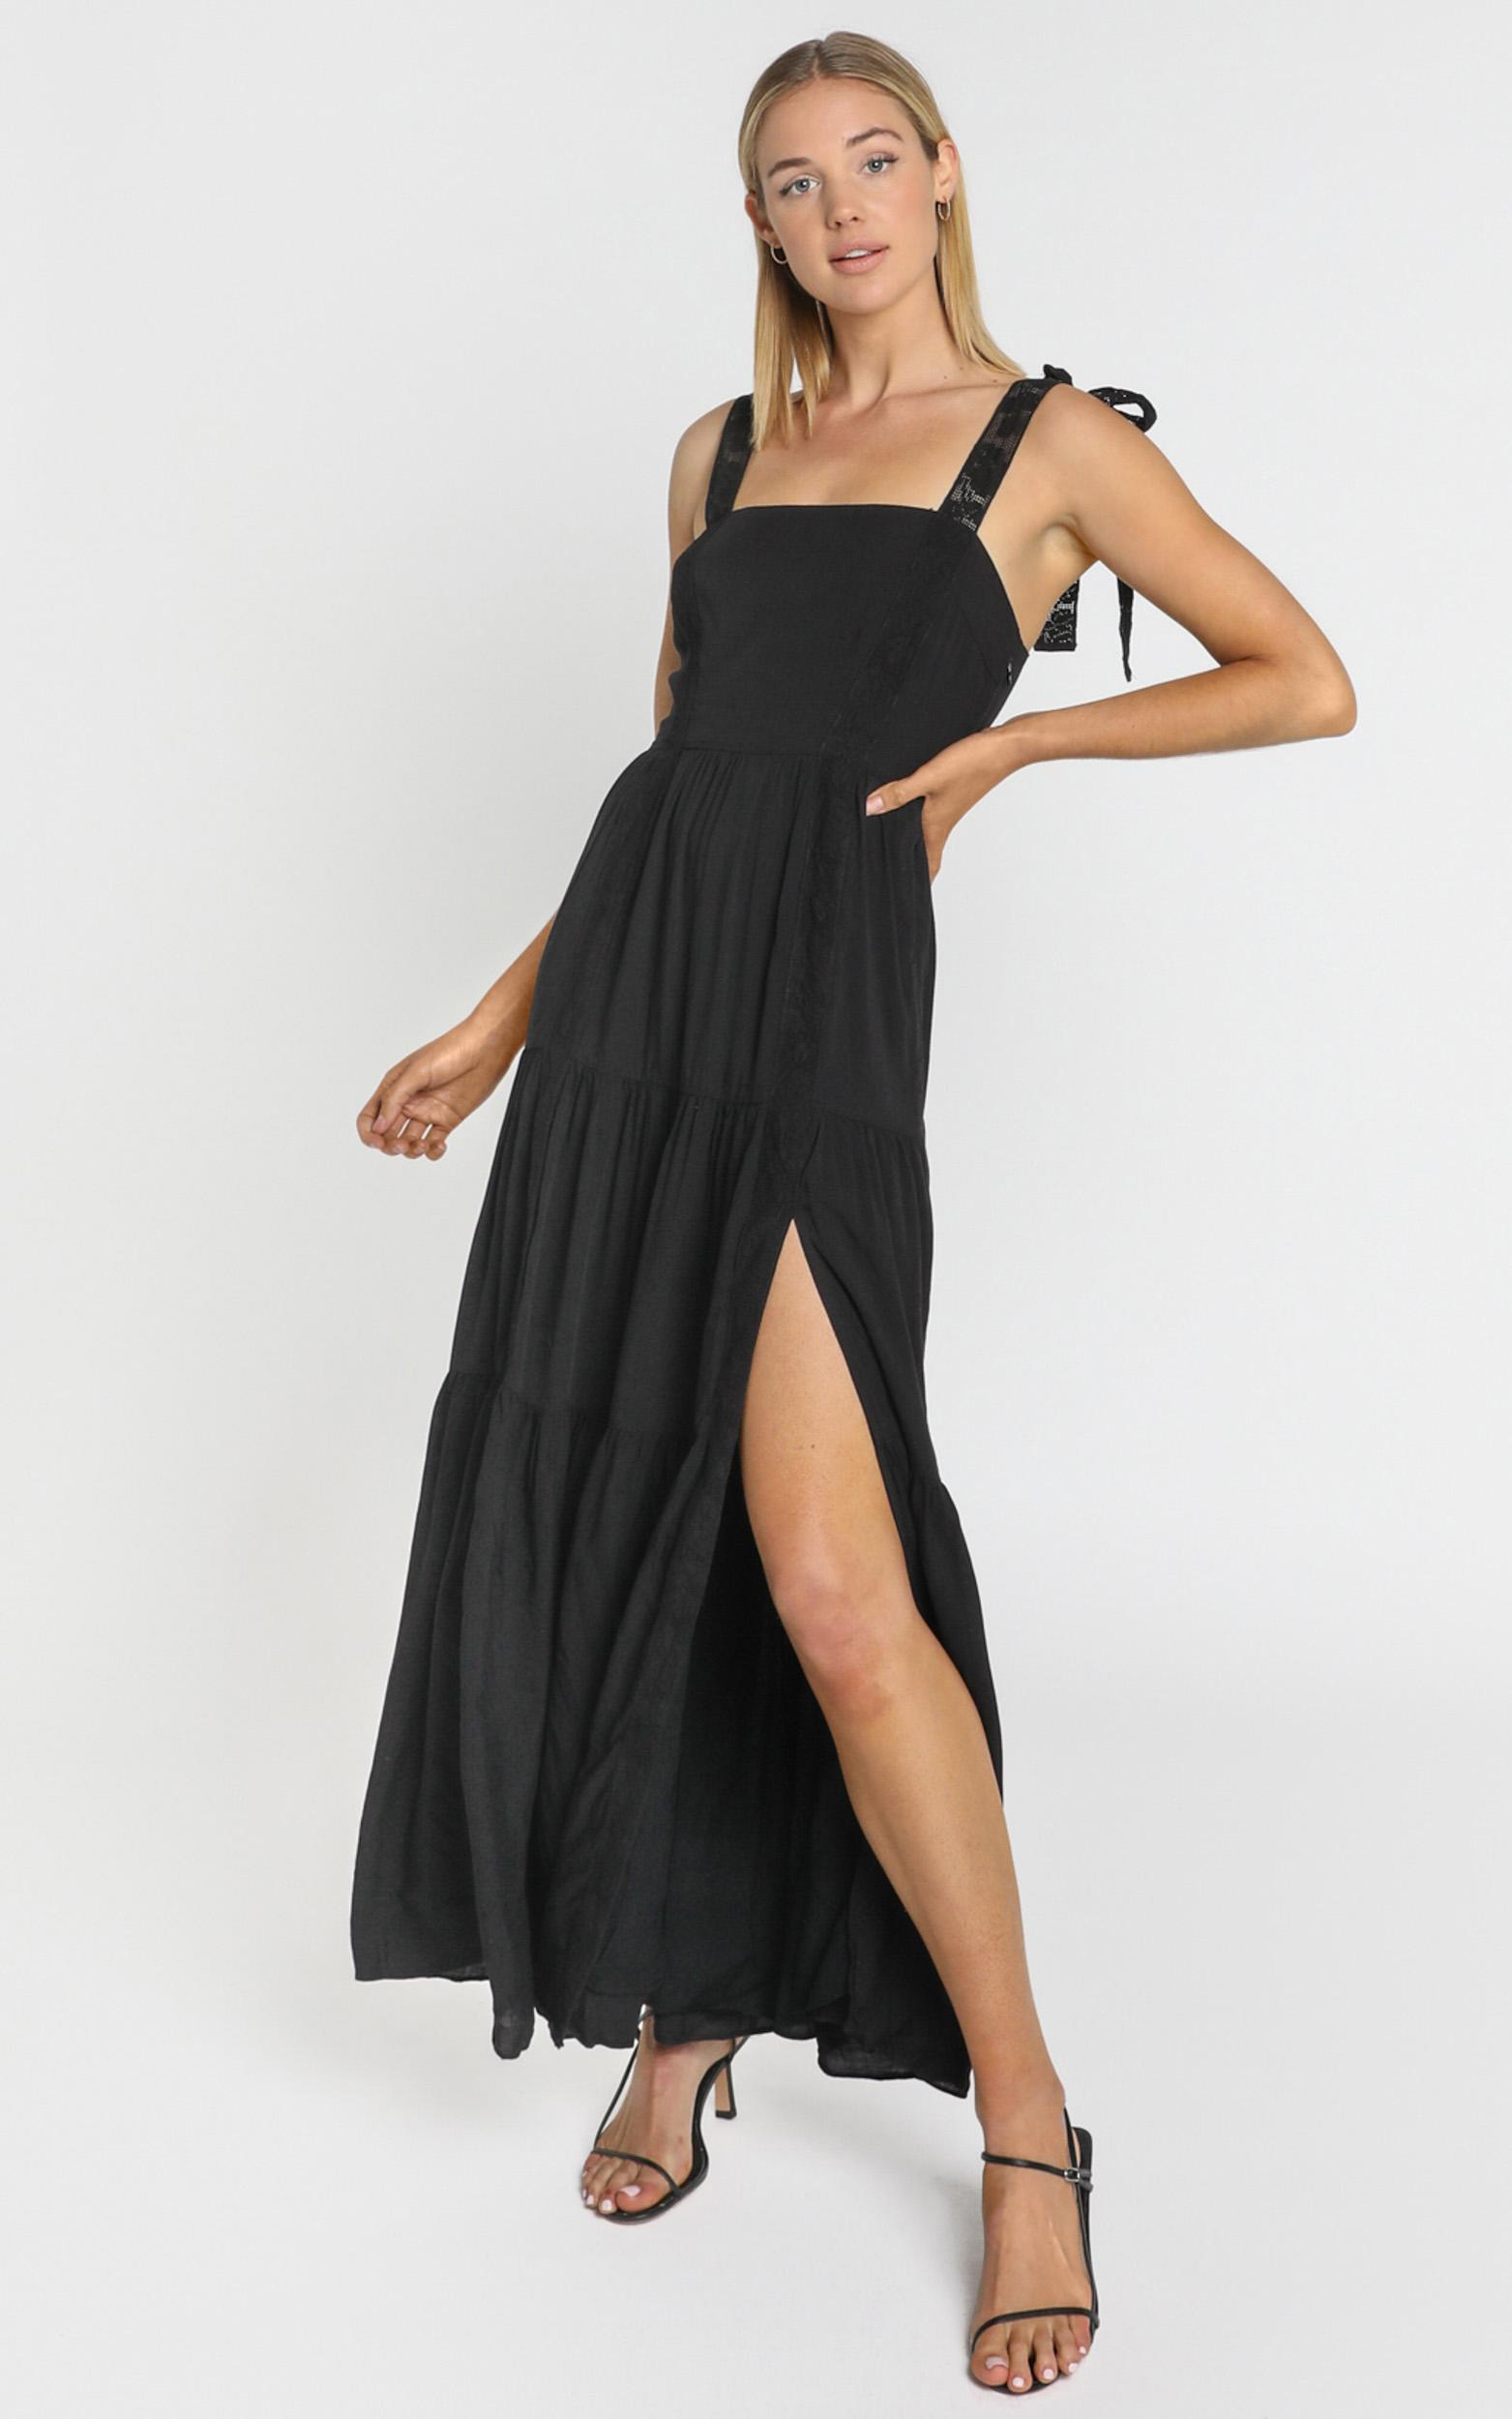 Afternoon Stroll Maxi Dress In black - 4 (XXS), BLK1, hi-res image number null